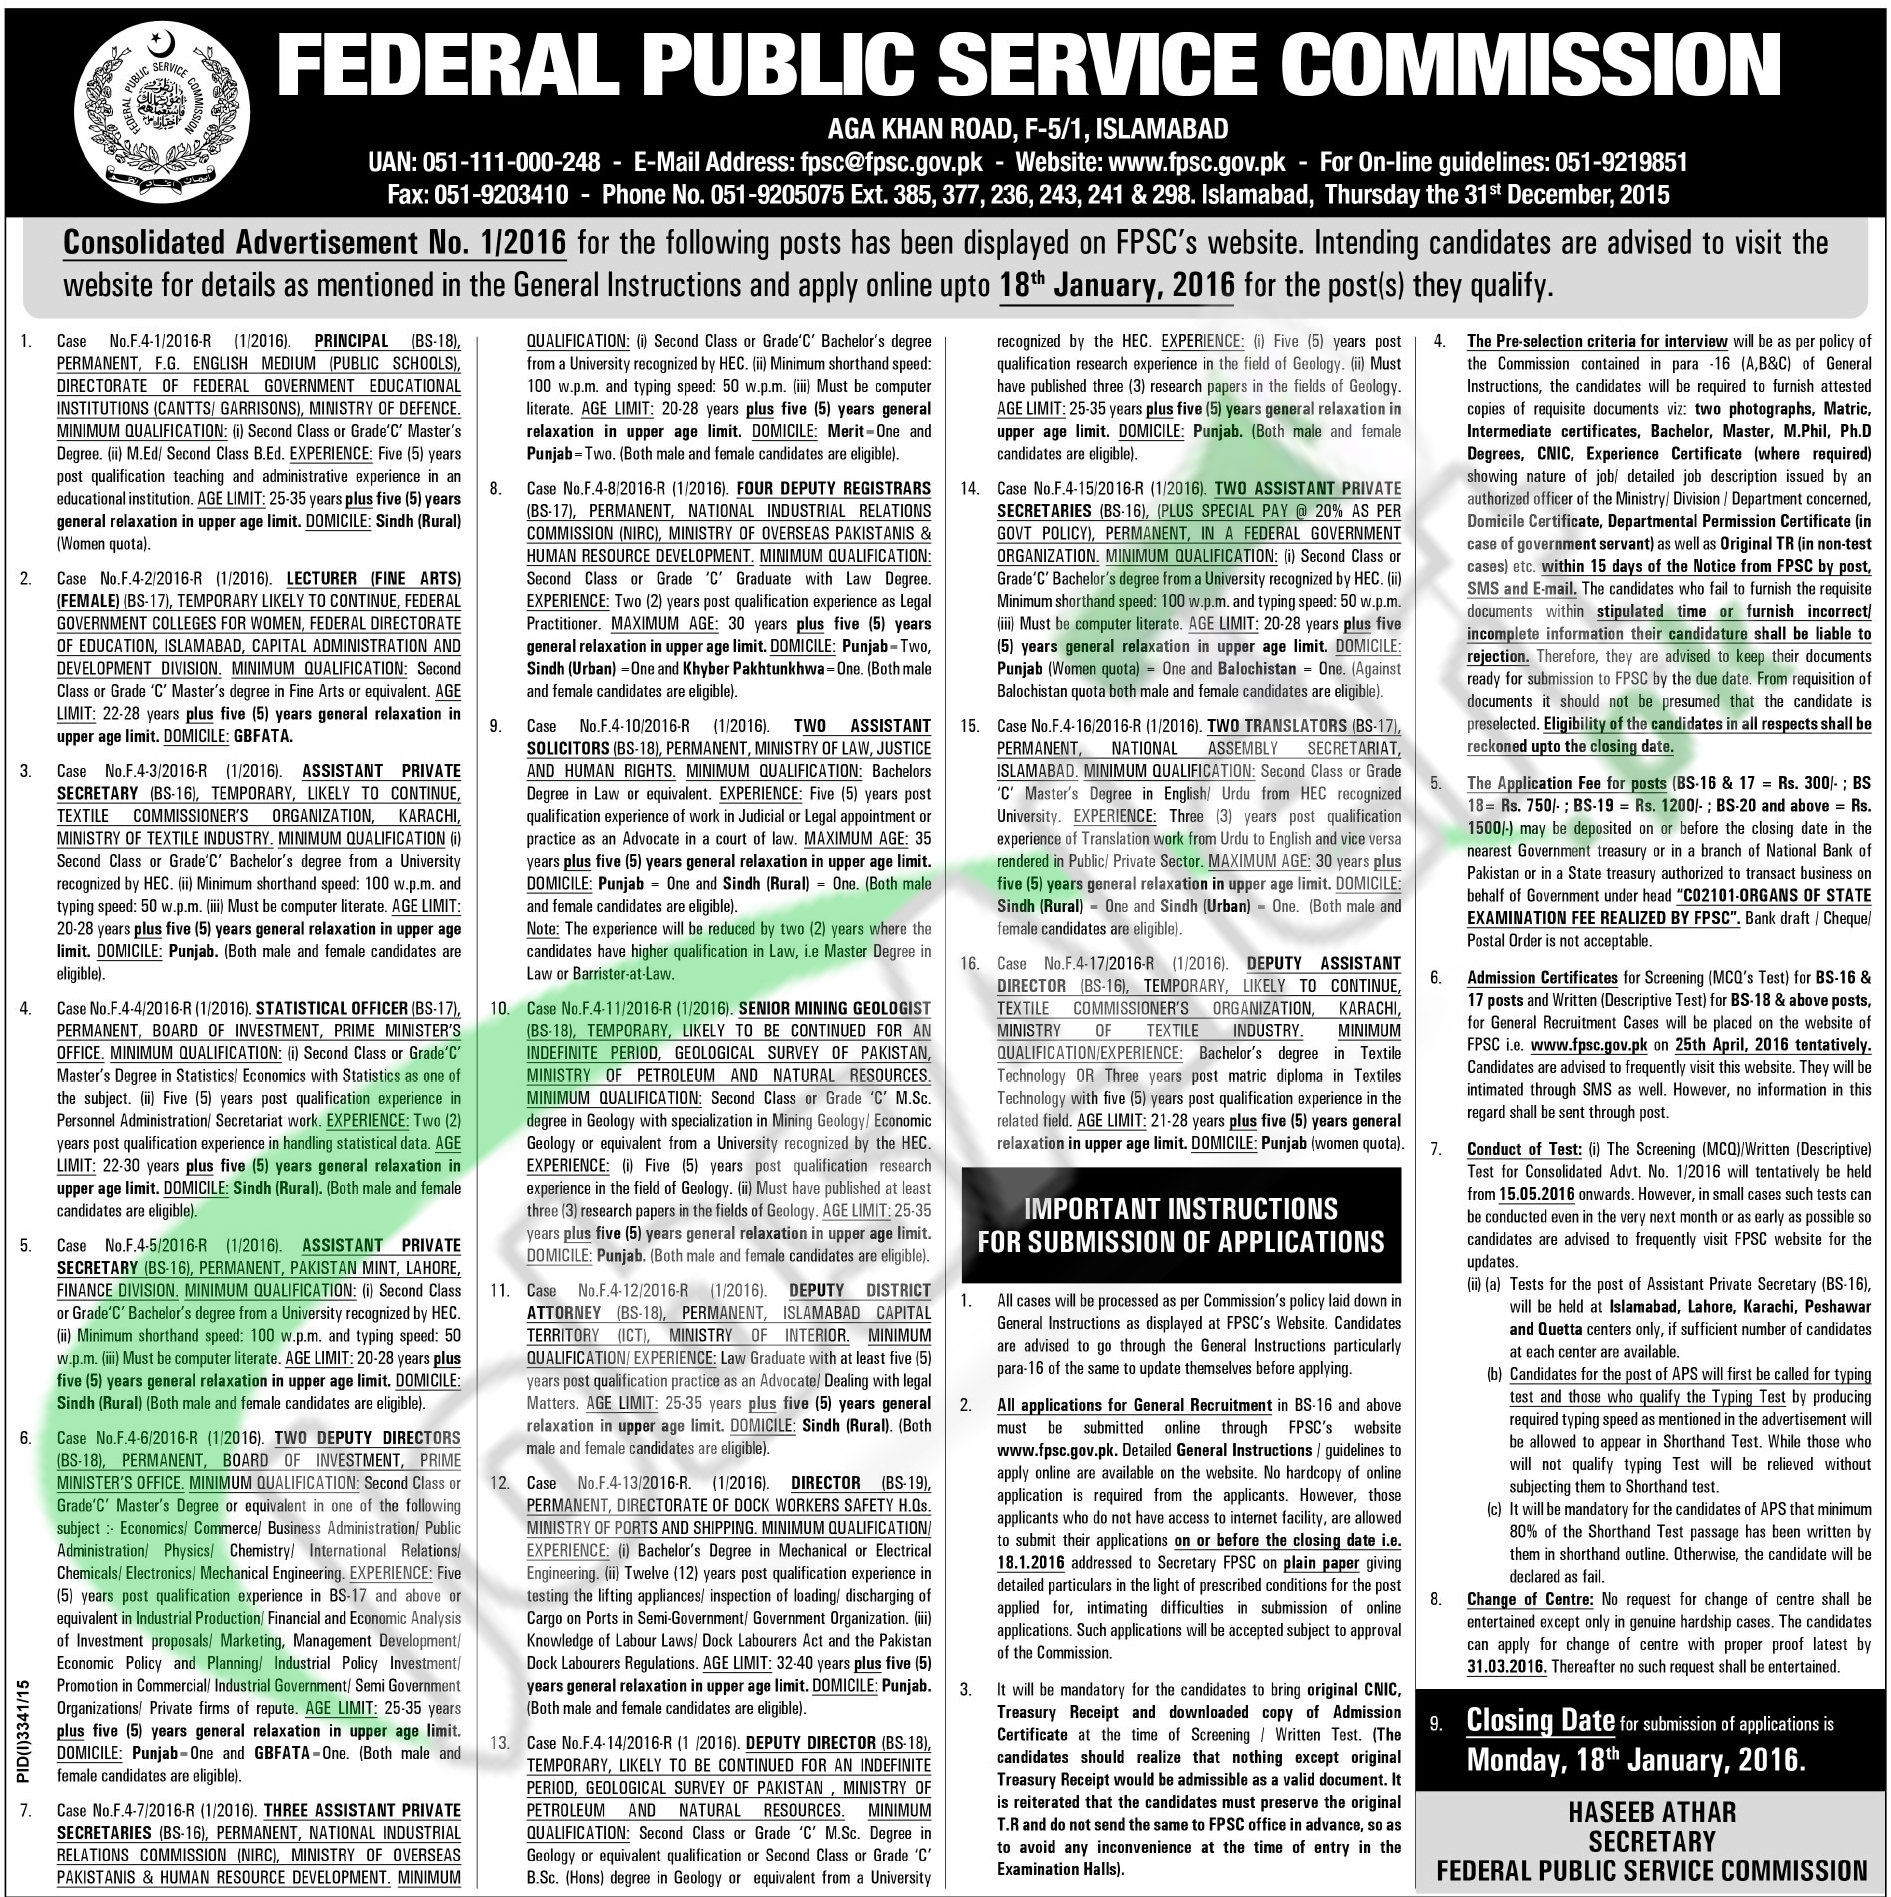 Recruitment Opportunities in Federal Public Service Commission 2016